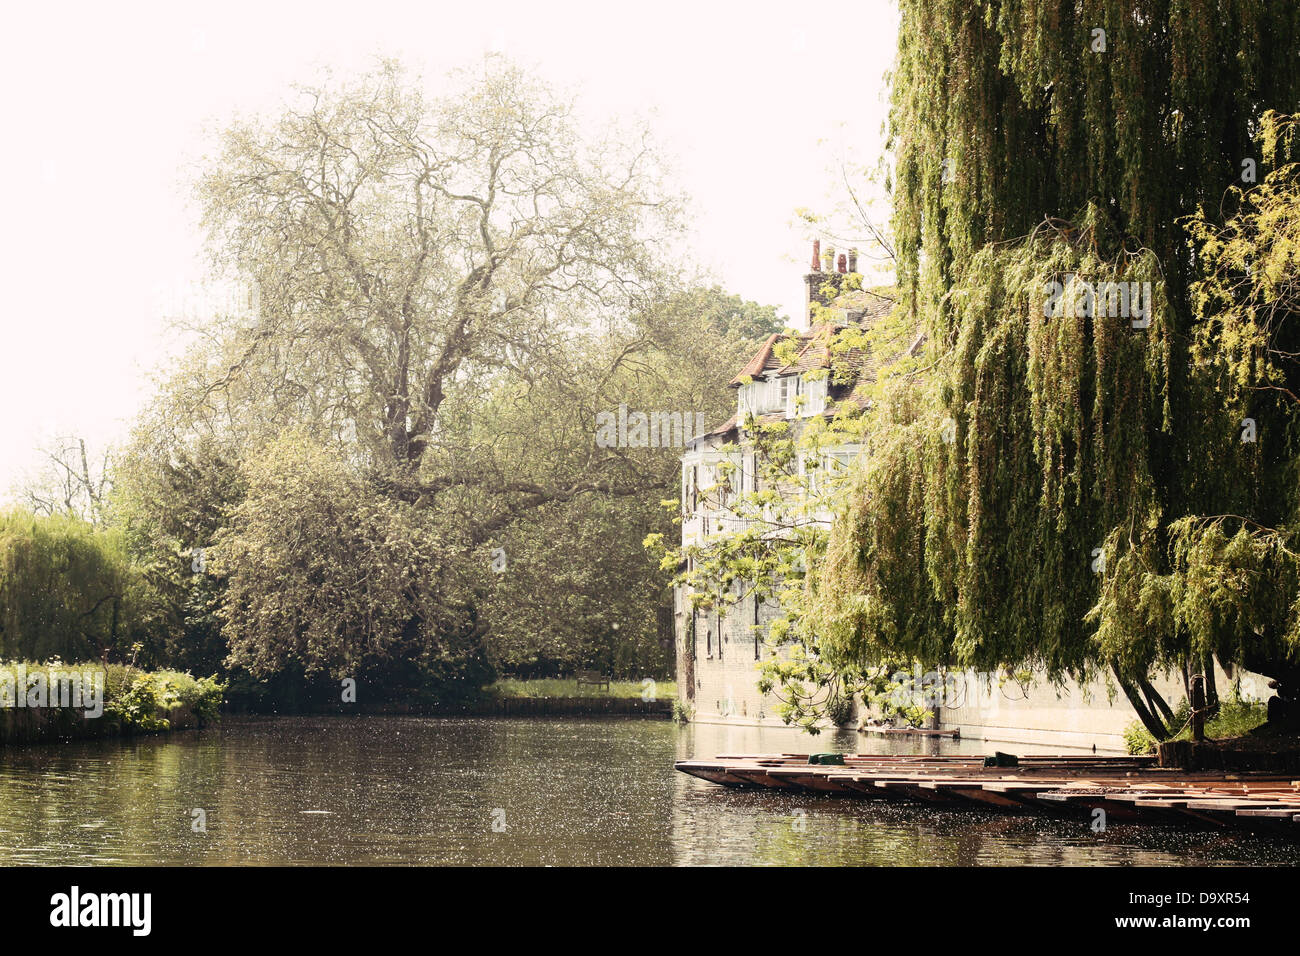 Pollen drifts over some punts and a weeping willow tree on the River Cam in Cambridge. - Stock Image